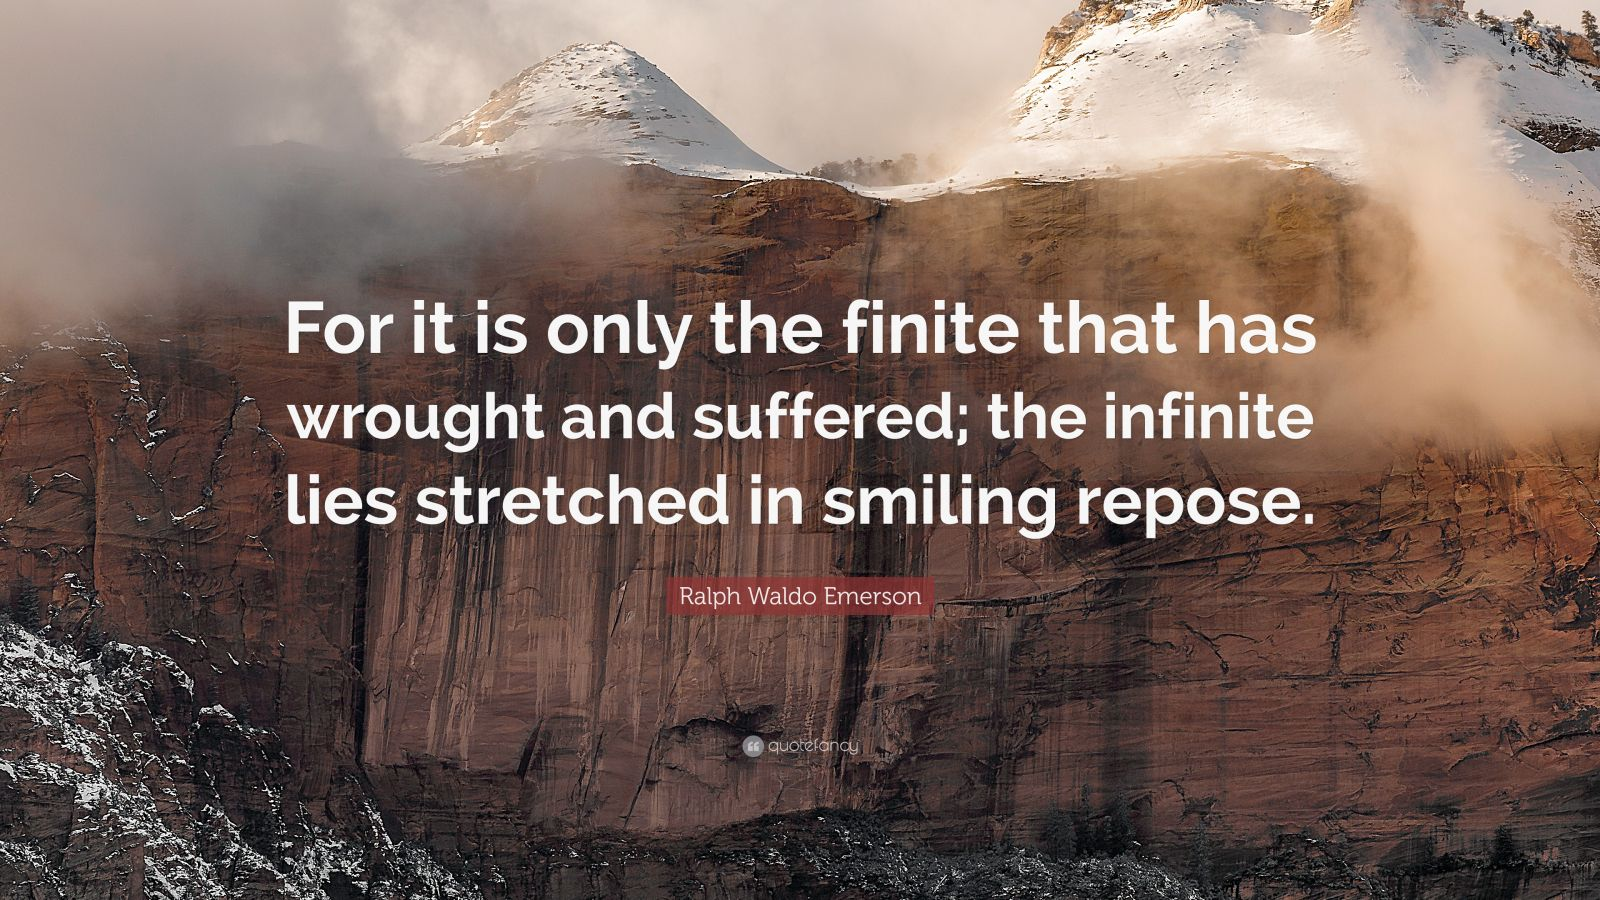 """Ralph Waldo Emerson Quote: """"For it is only the finite that has wrought and suffered; the infinite lies stretched in smiling repose."""""""